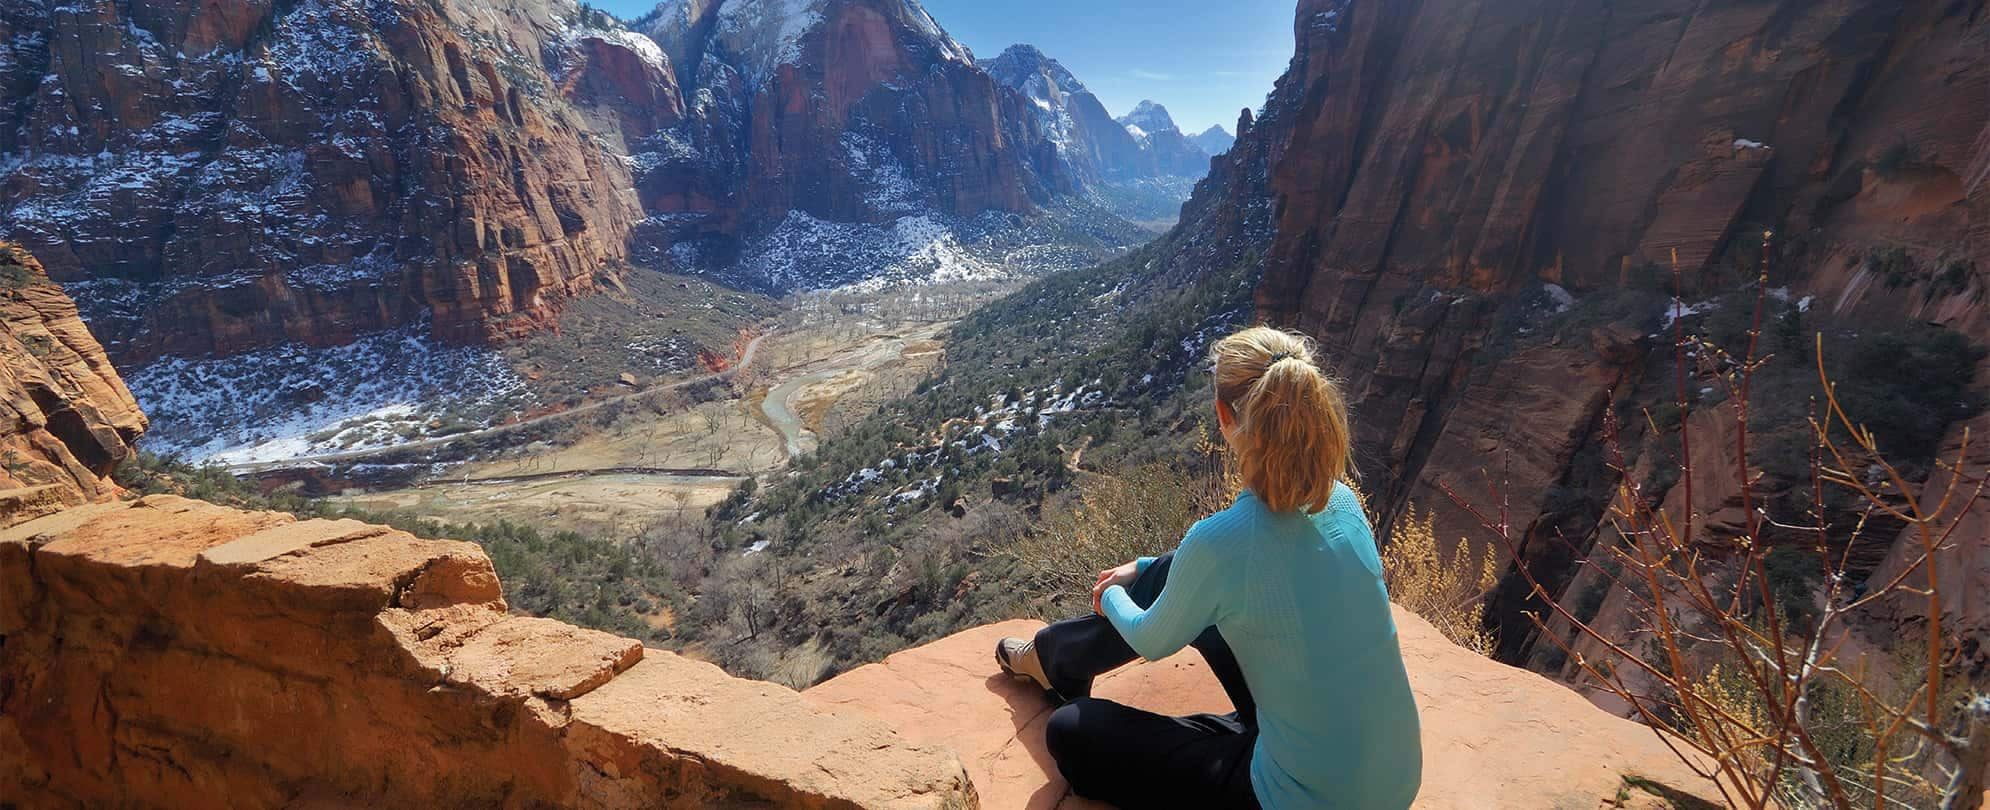 A woman sits on a rock overlooking Zion National Park in St. George, Utah